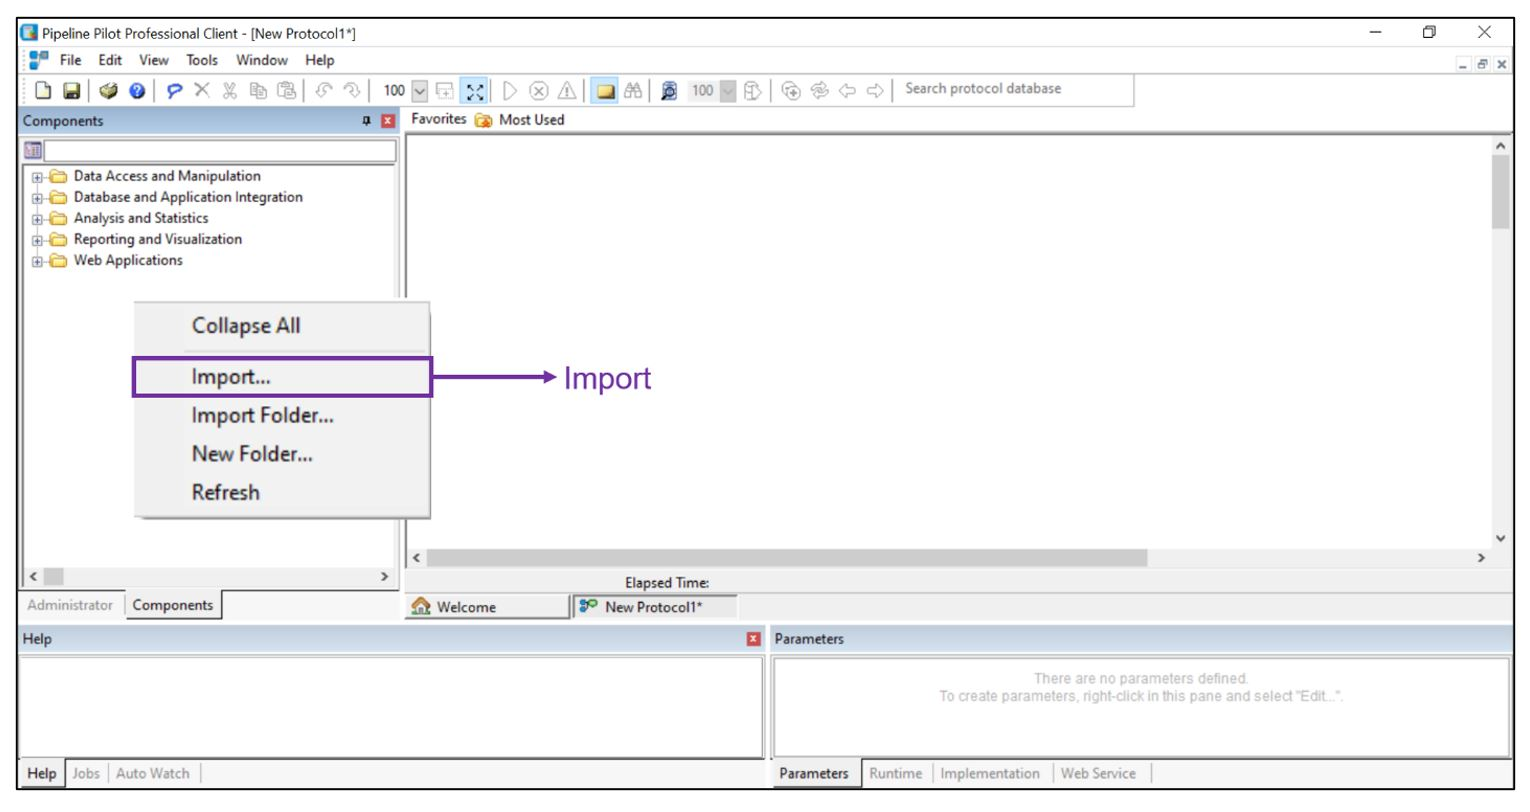 GSI APU components imported into the Pipeline Pilot interface